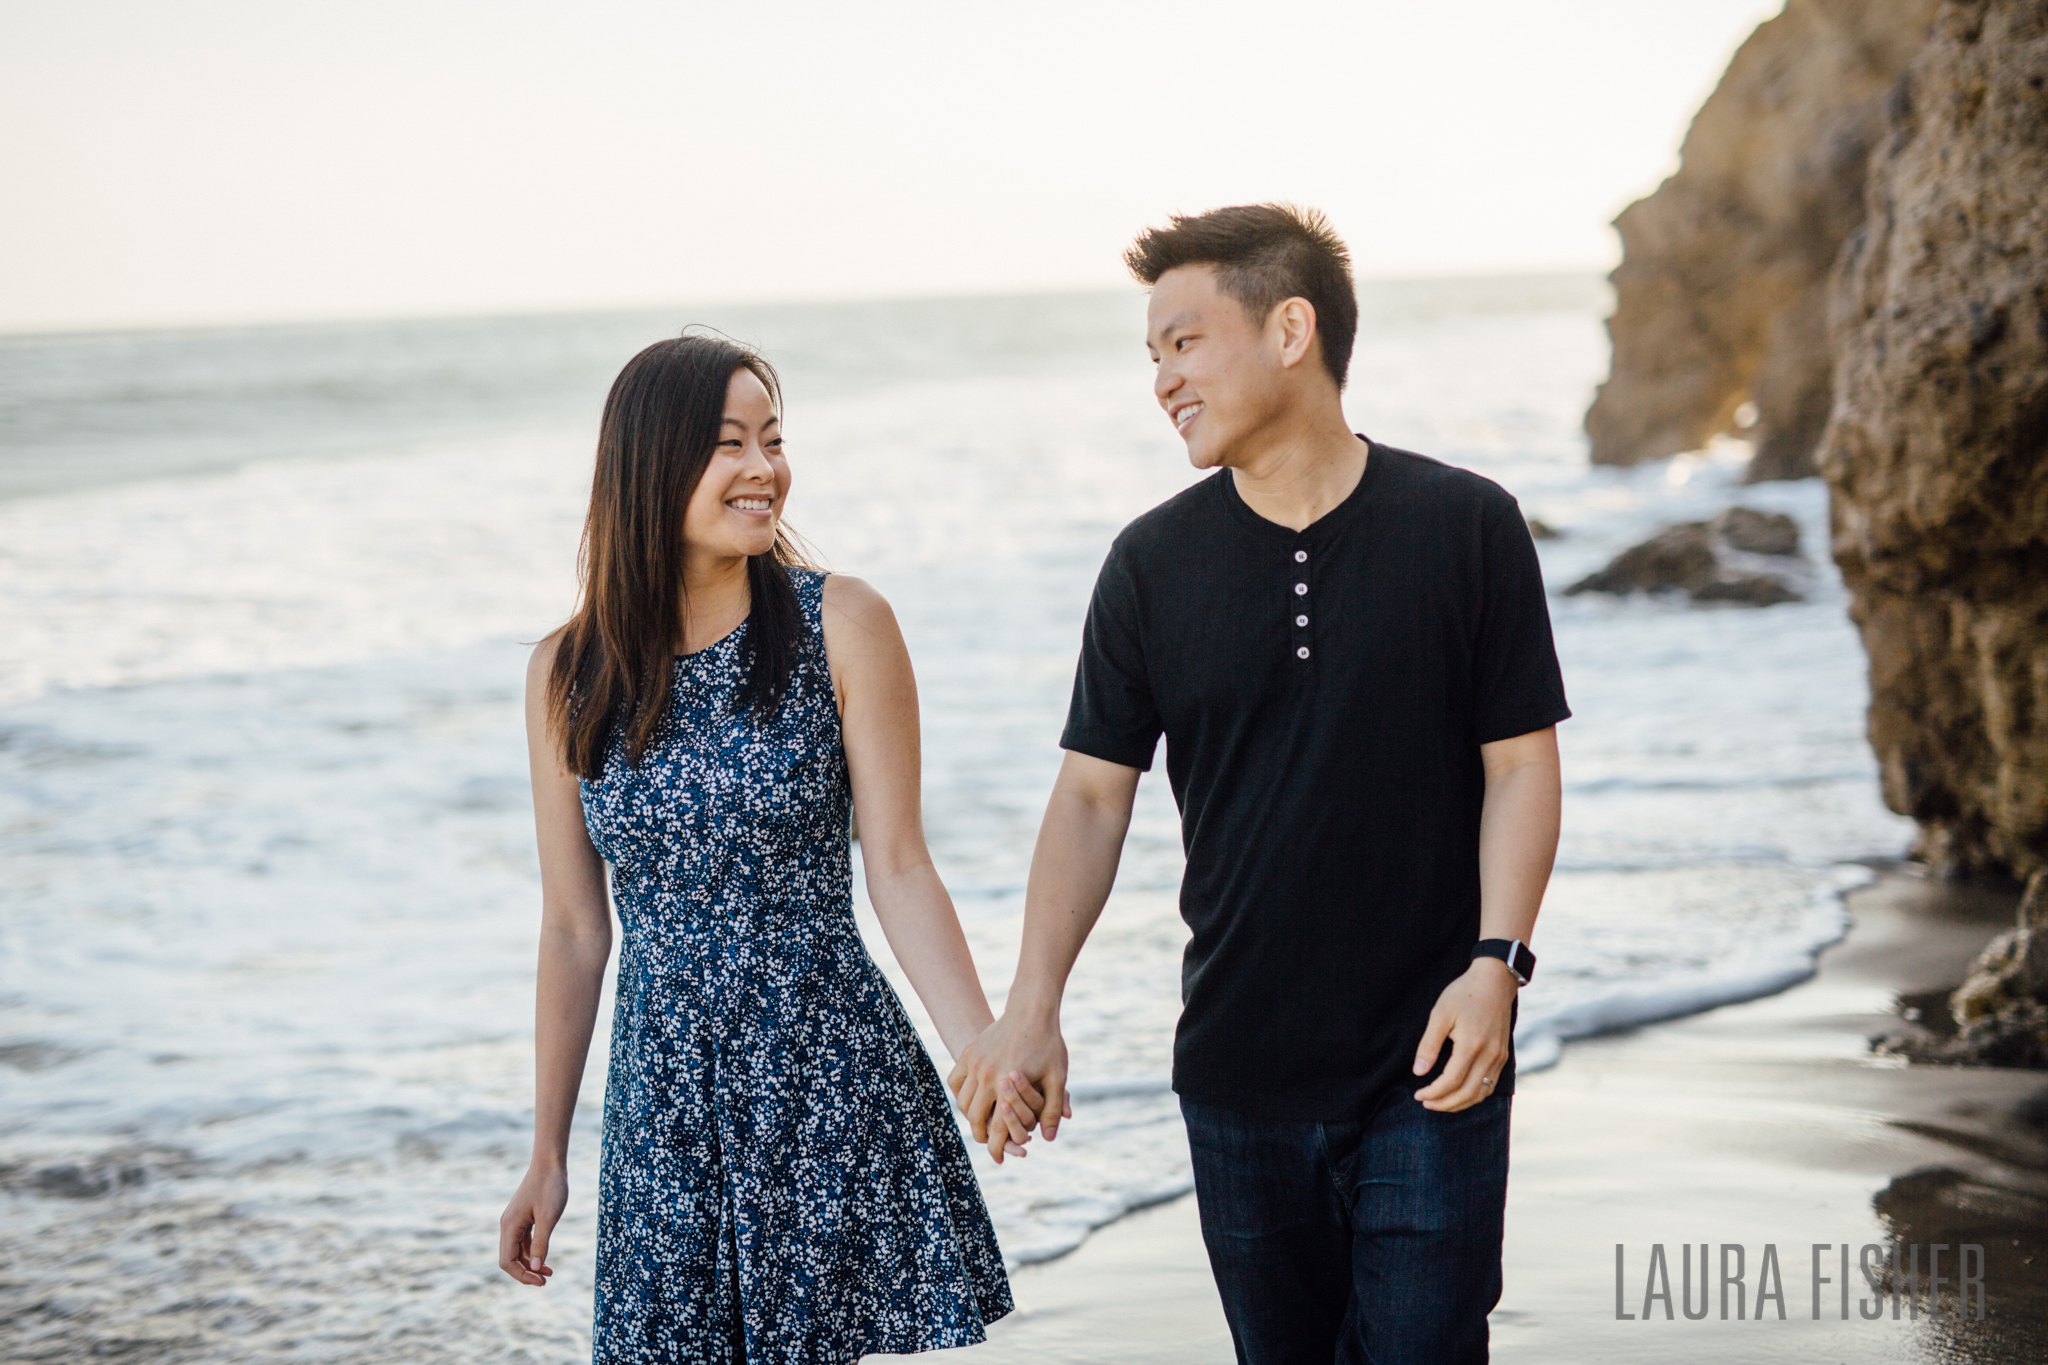 malibu-california-wedding-el-matador-beach-laura-fisher-photography-0046-2.jpg